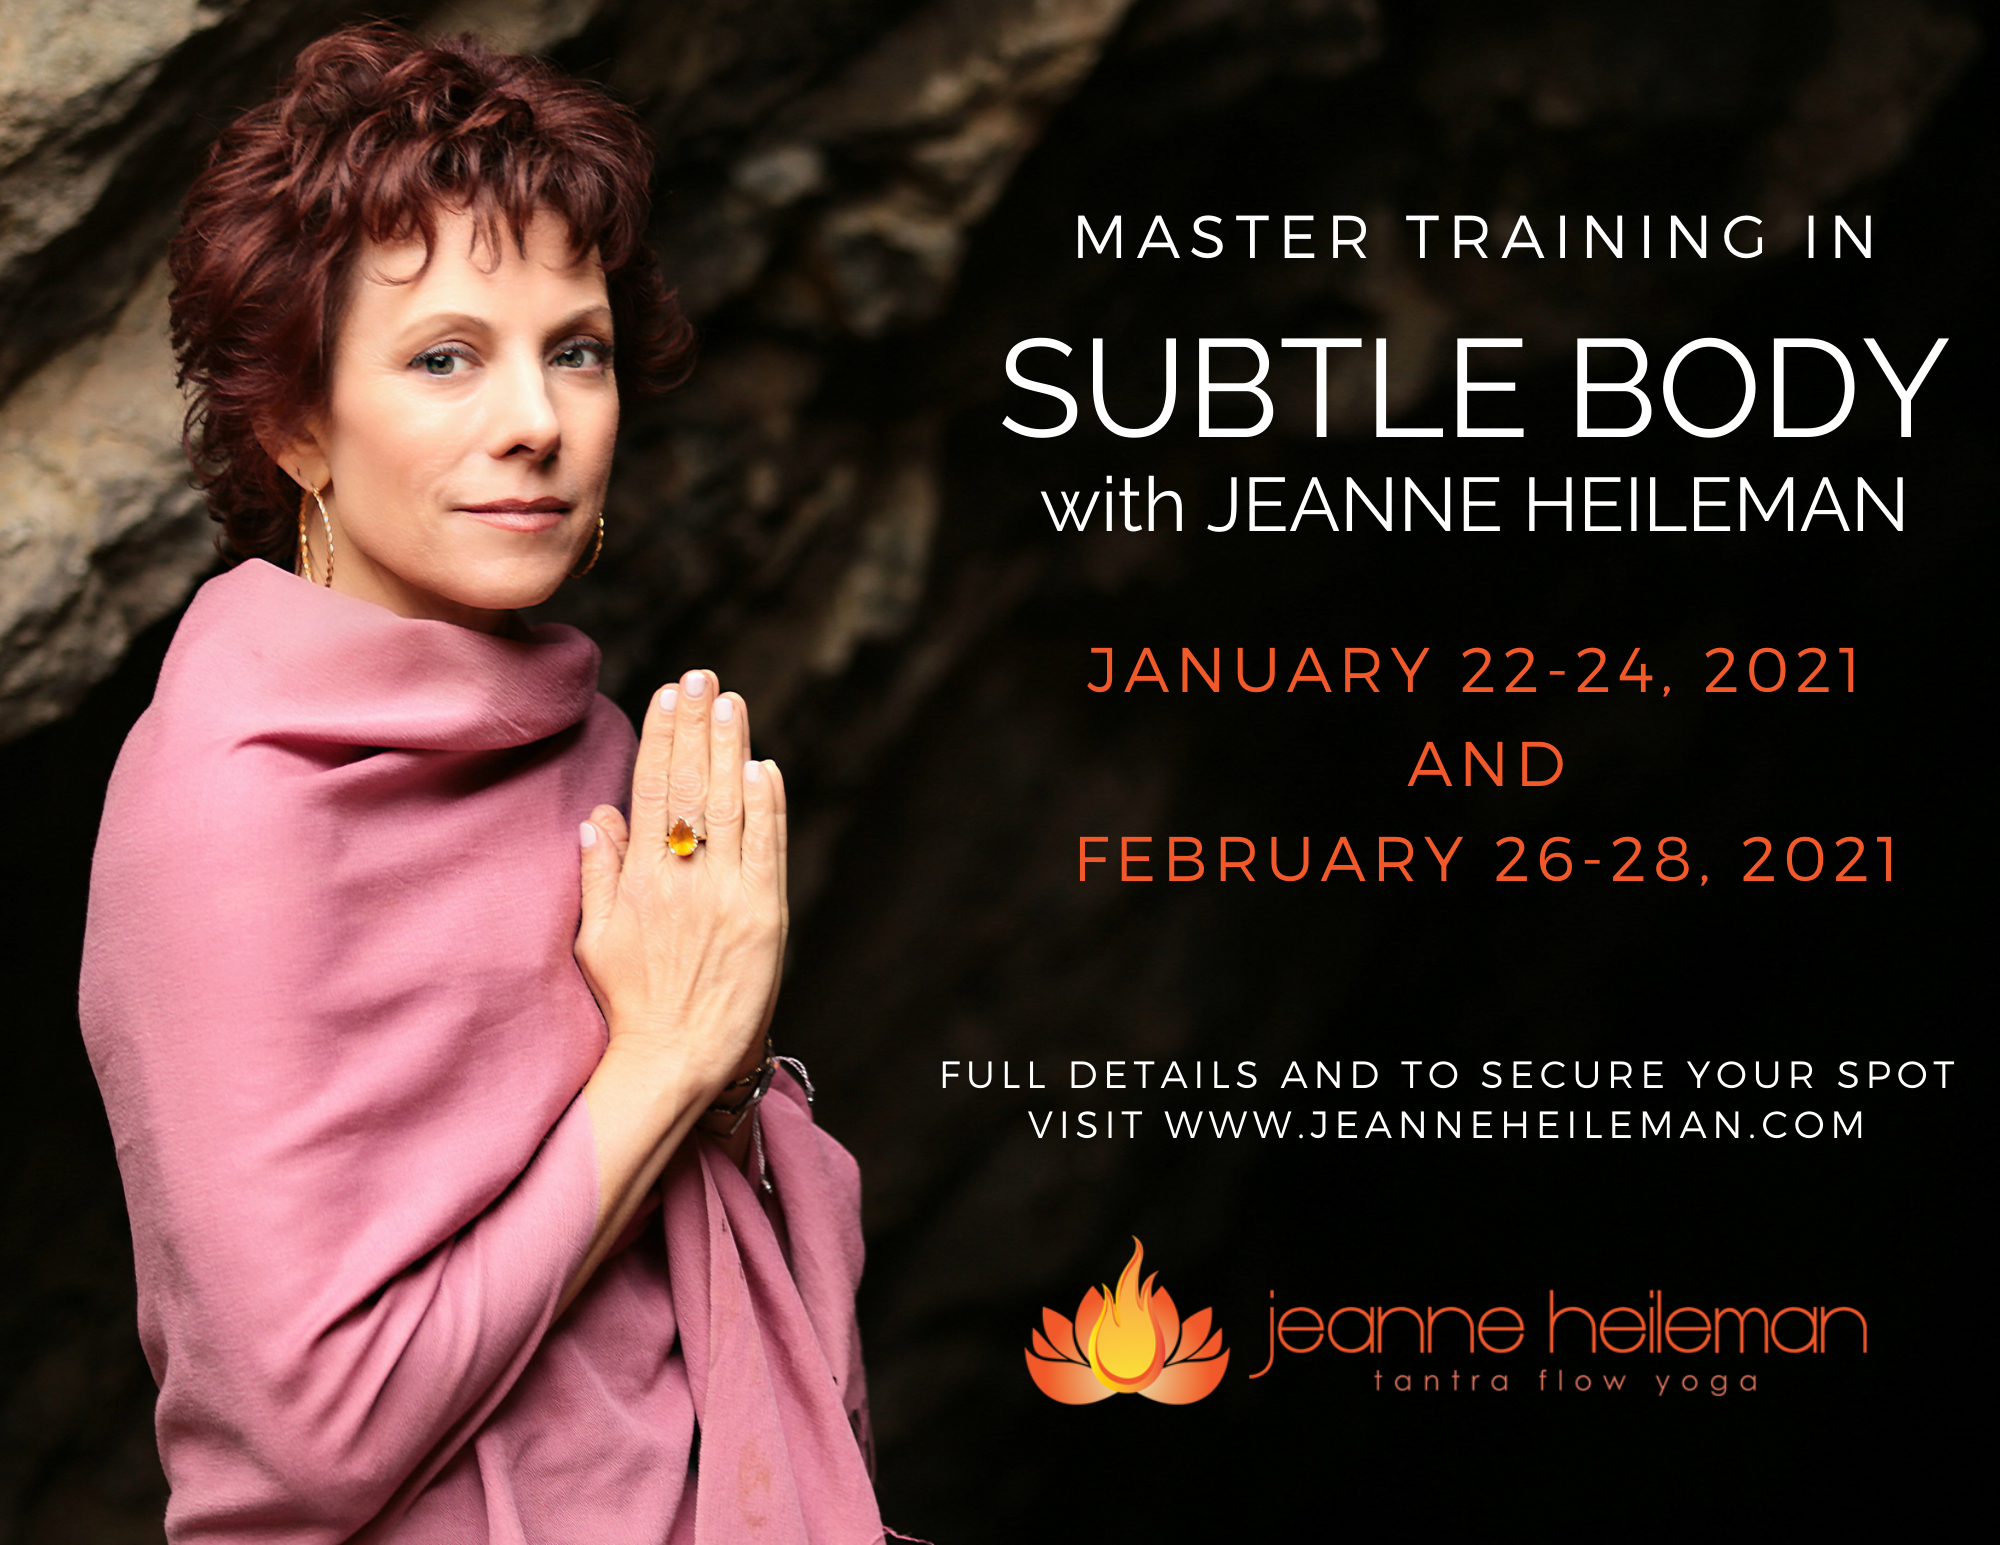 Jeanne Heileman - Master Training in Subtle Body - 50 Hour Journey through the Inner Layers of Yoga